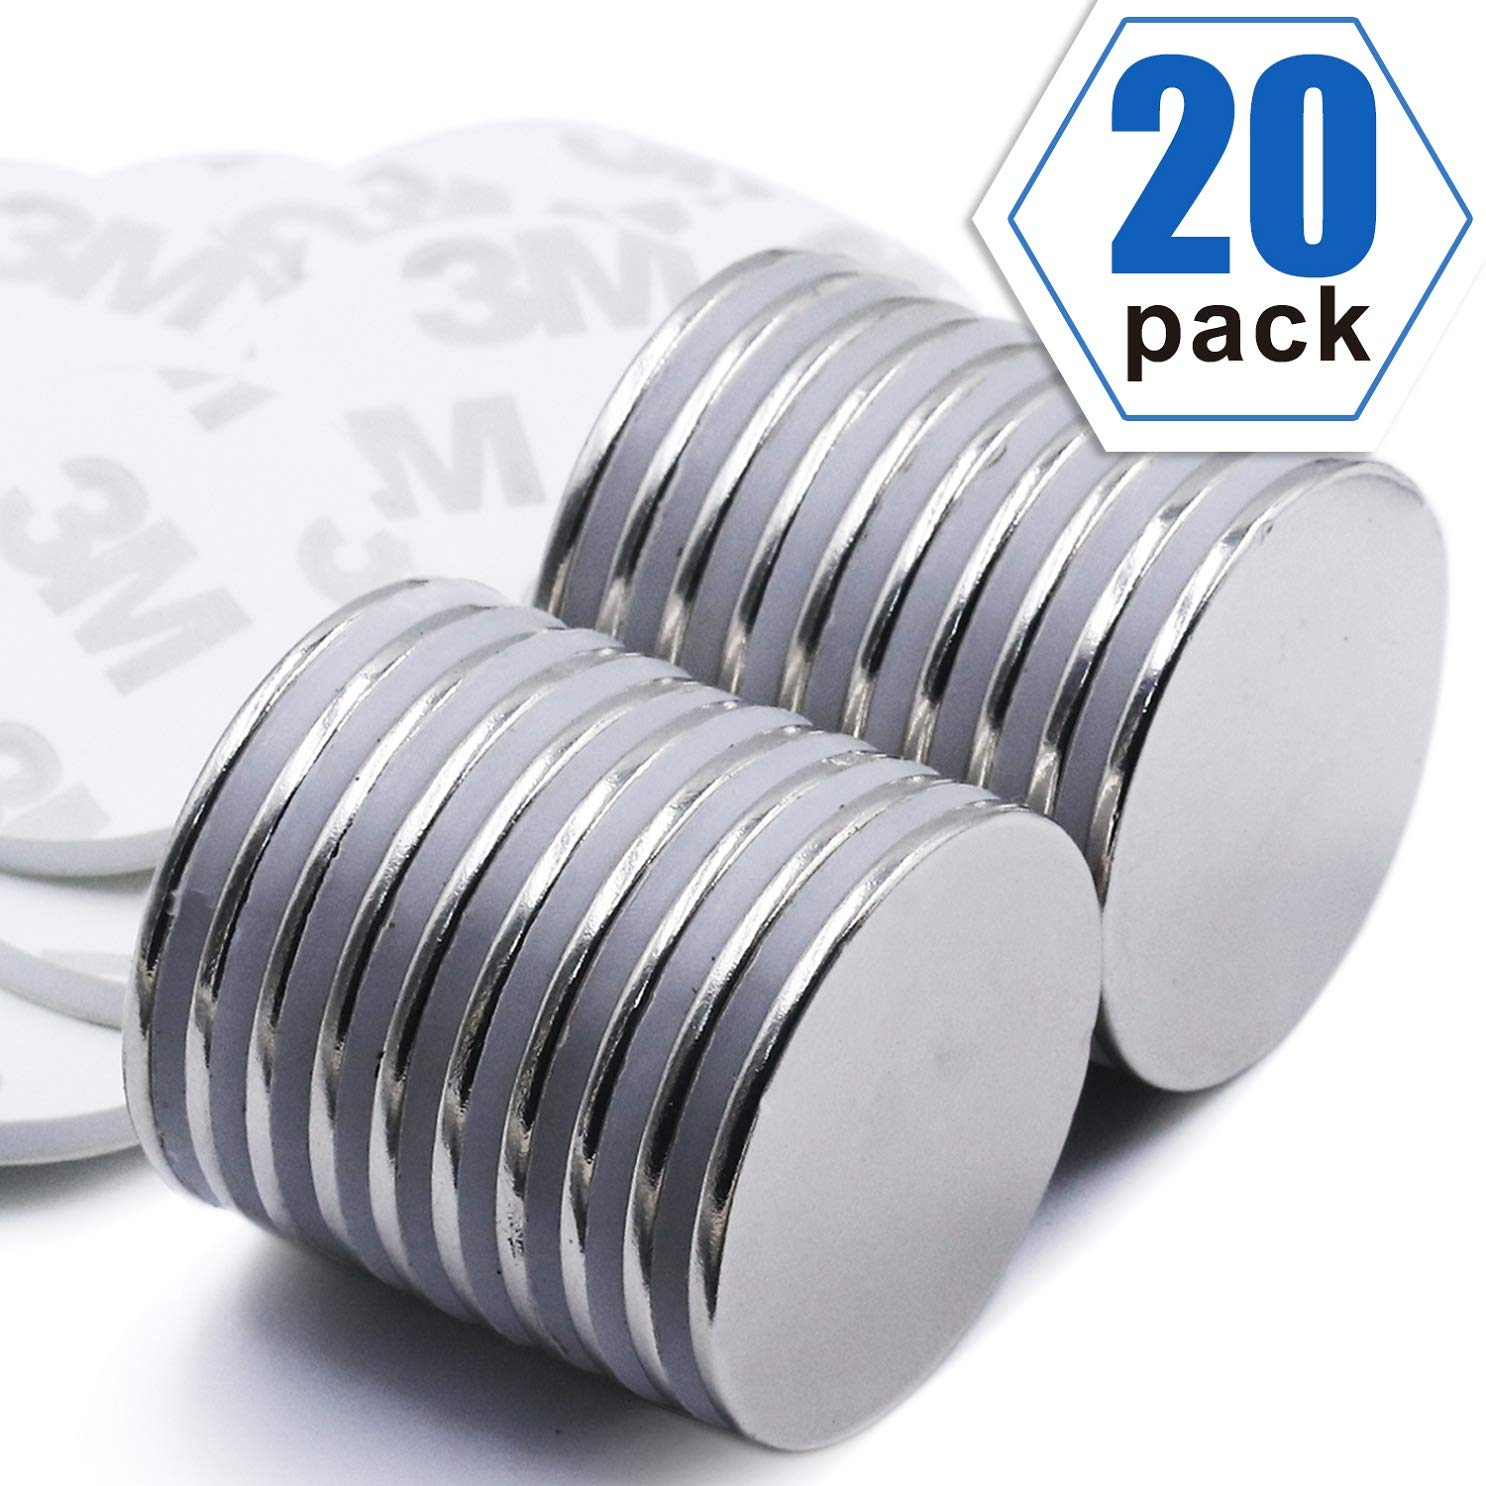 LOVIMAG Strong Neodymium Disc Magnets with Double-Sided Adhesive, Powerful Rare Earth Magnets, Perfect for Fridge, DIY, Building, Scientific, Craft, and Office Magnets, 1.26 inch x 0.08 inch - Pack of